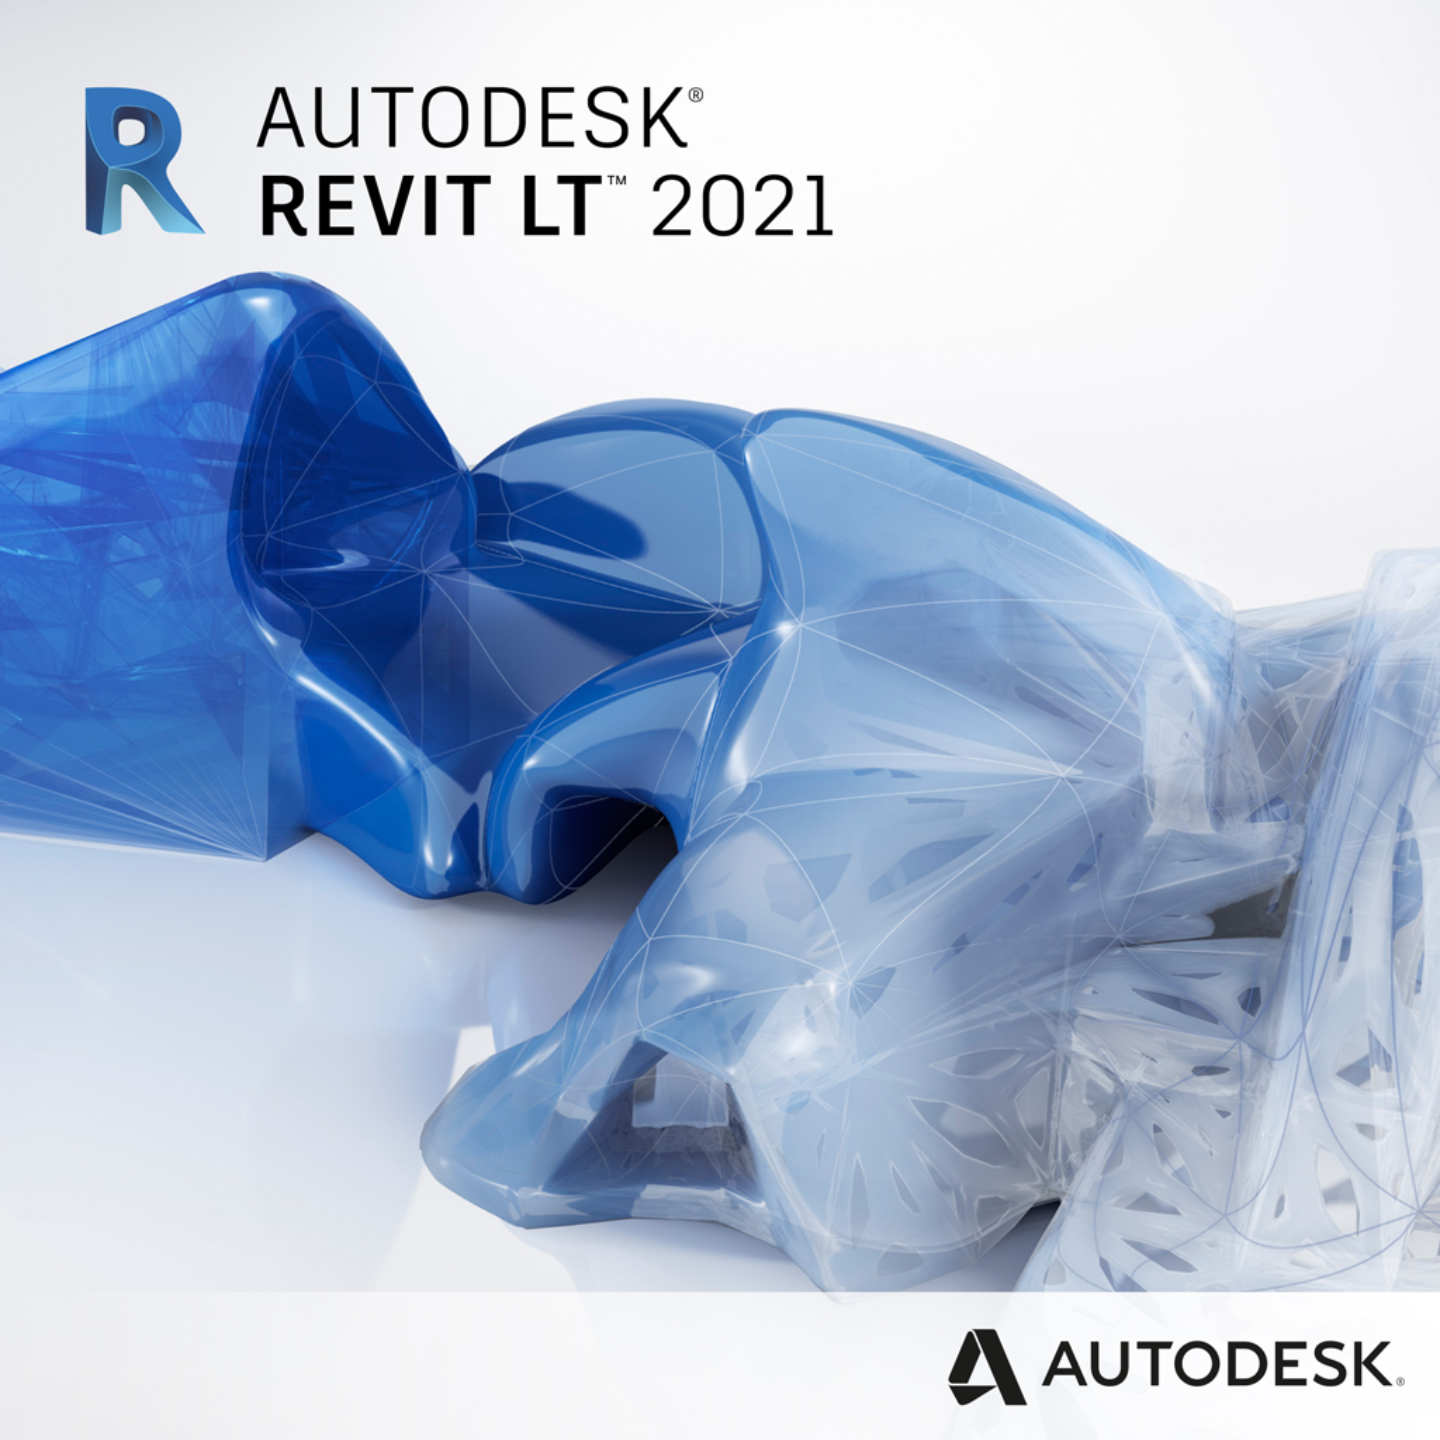 Autodesk Autocad Revit LT Suite 2021 3-Year Subscription